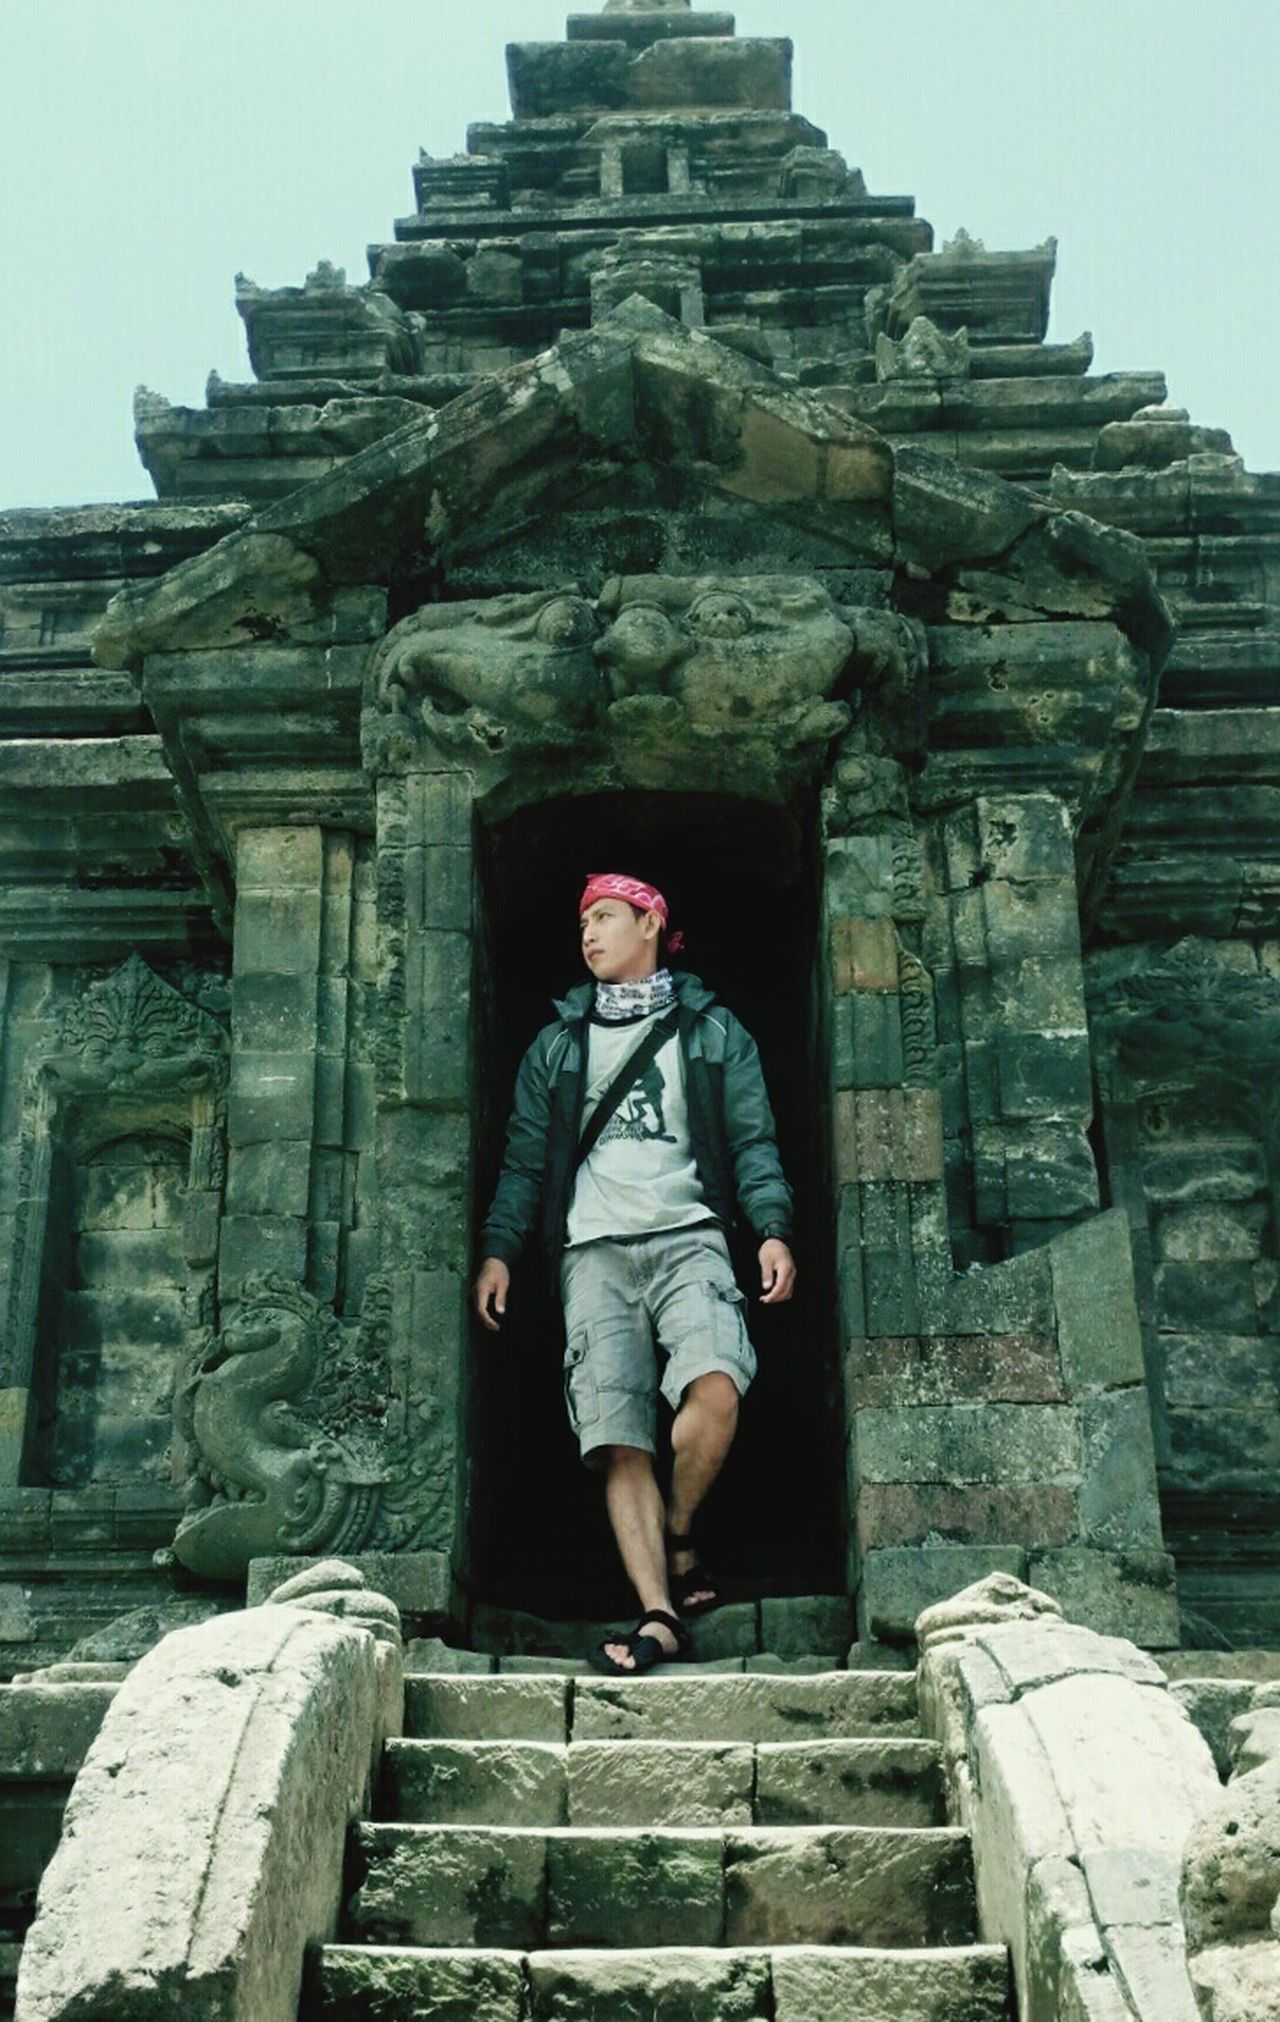 INDONESIA Jawatengah Tamplearjuna Beauty In Nature Cirebon  Selfie Outdoors Spirituality Architecture Travel Destinations History Building Exterior Real People One Person People